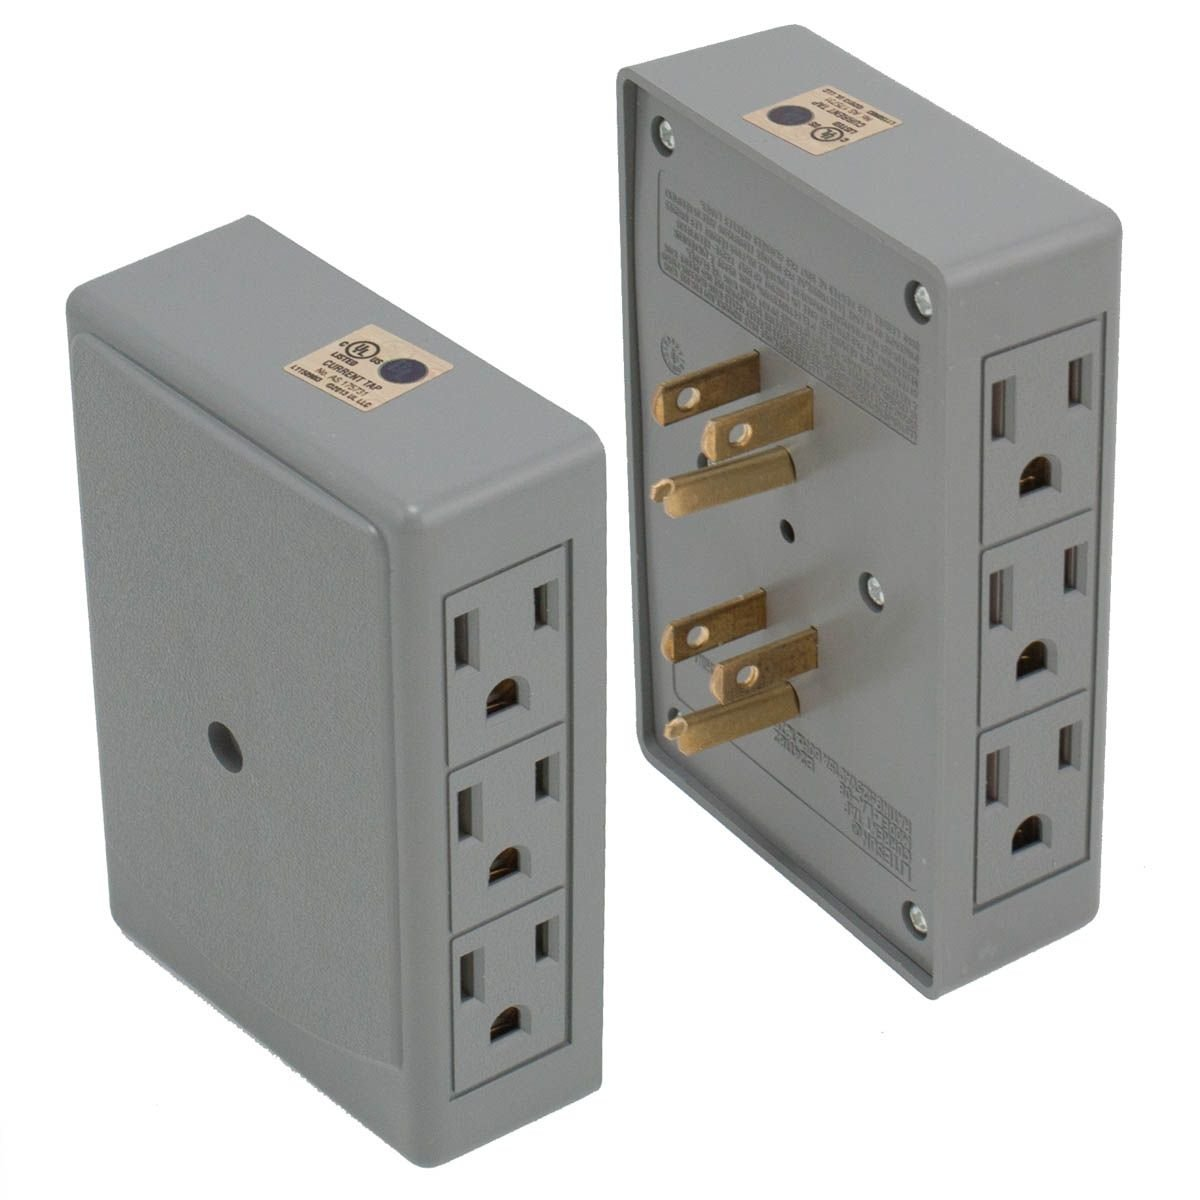 2 Side Entry 6 Way Electrical Socket Outlet Splitter In Wall Tap Wiring Canada Adapter Grey Electronics